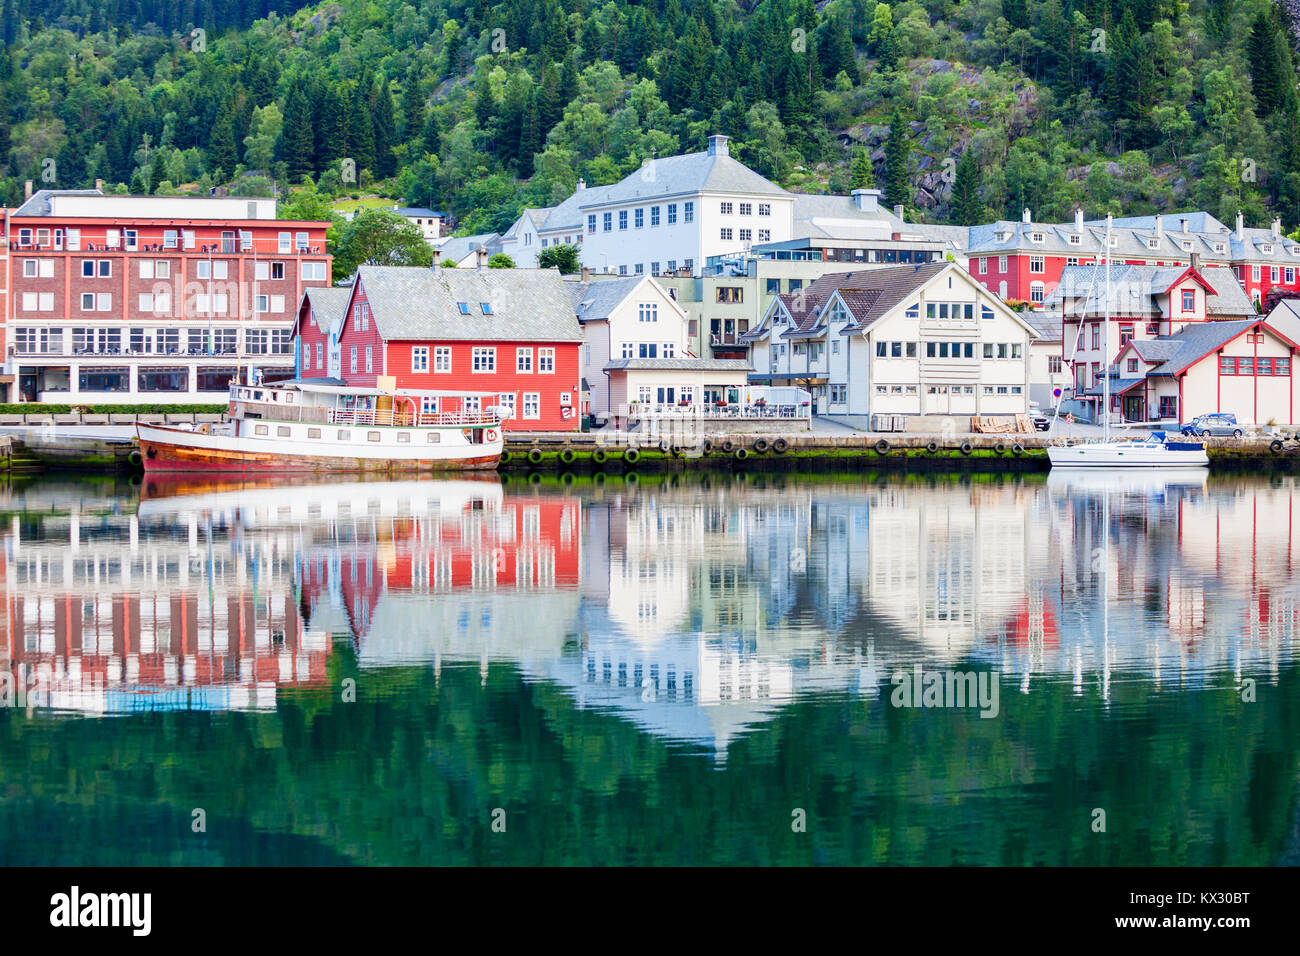 Odda is a town in Odda municipality in Hordaland county, Hardanger district in Norway. Located near Trolltunga rock - Stock Image